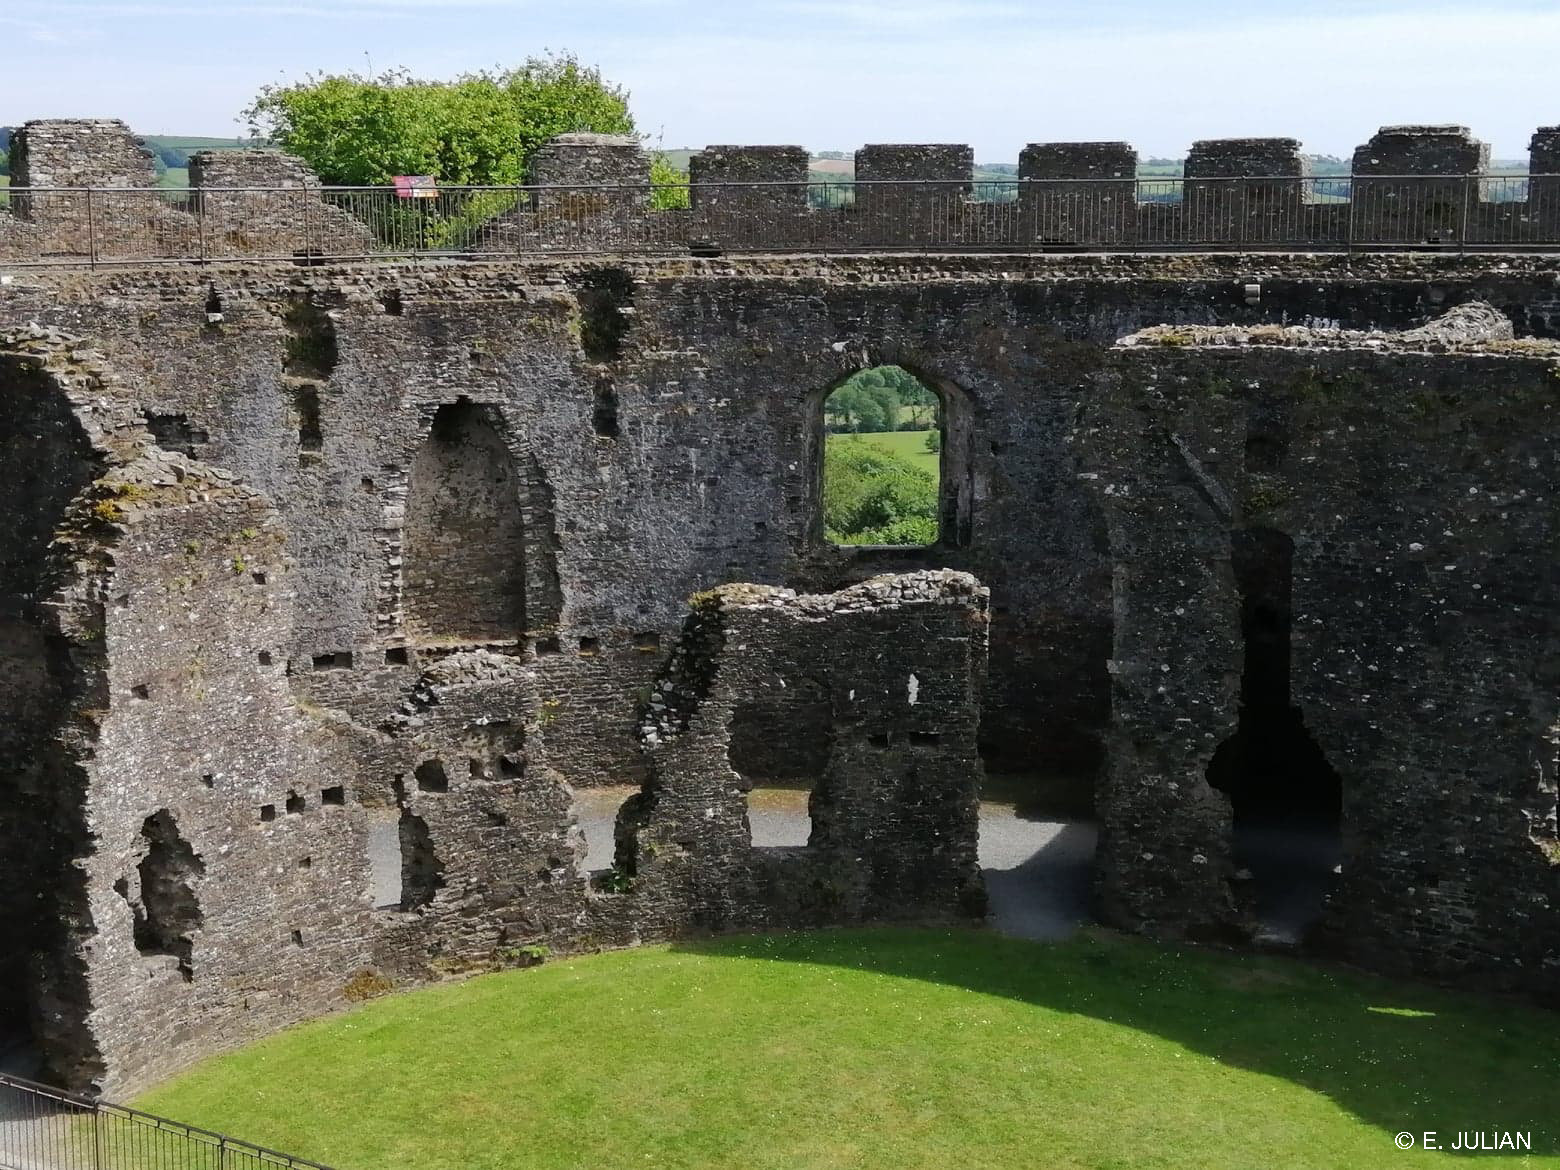 The English Heritage looked after Restormel Castle